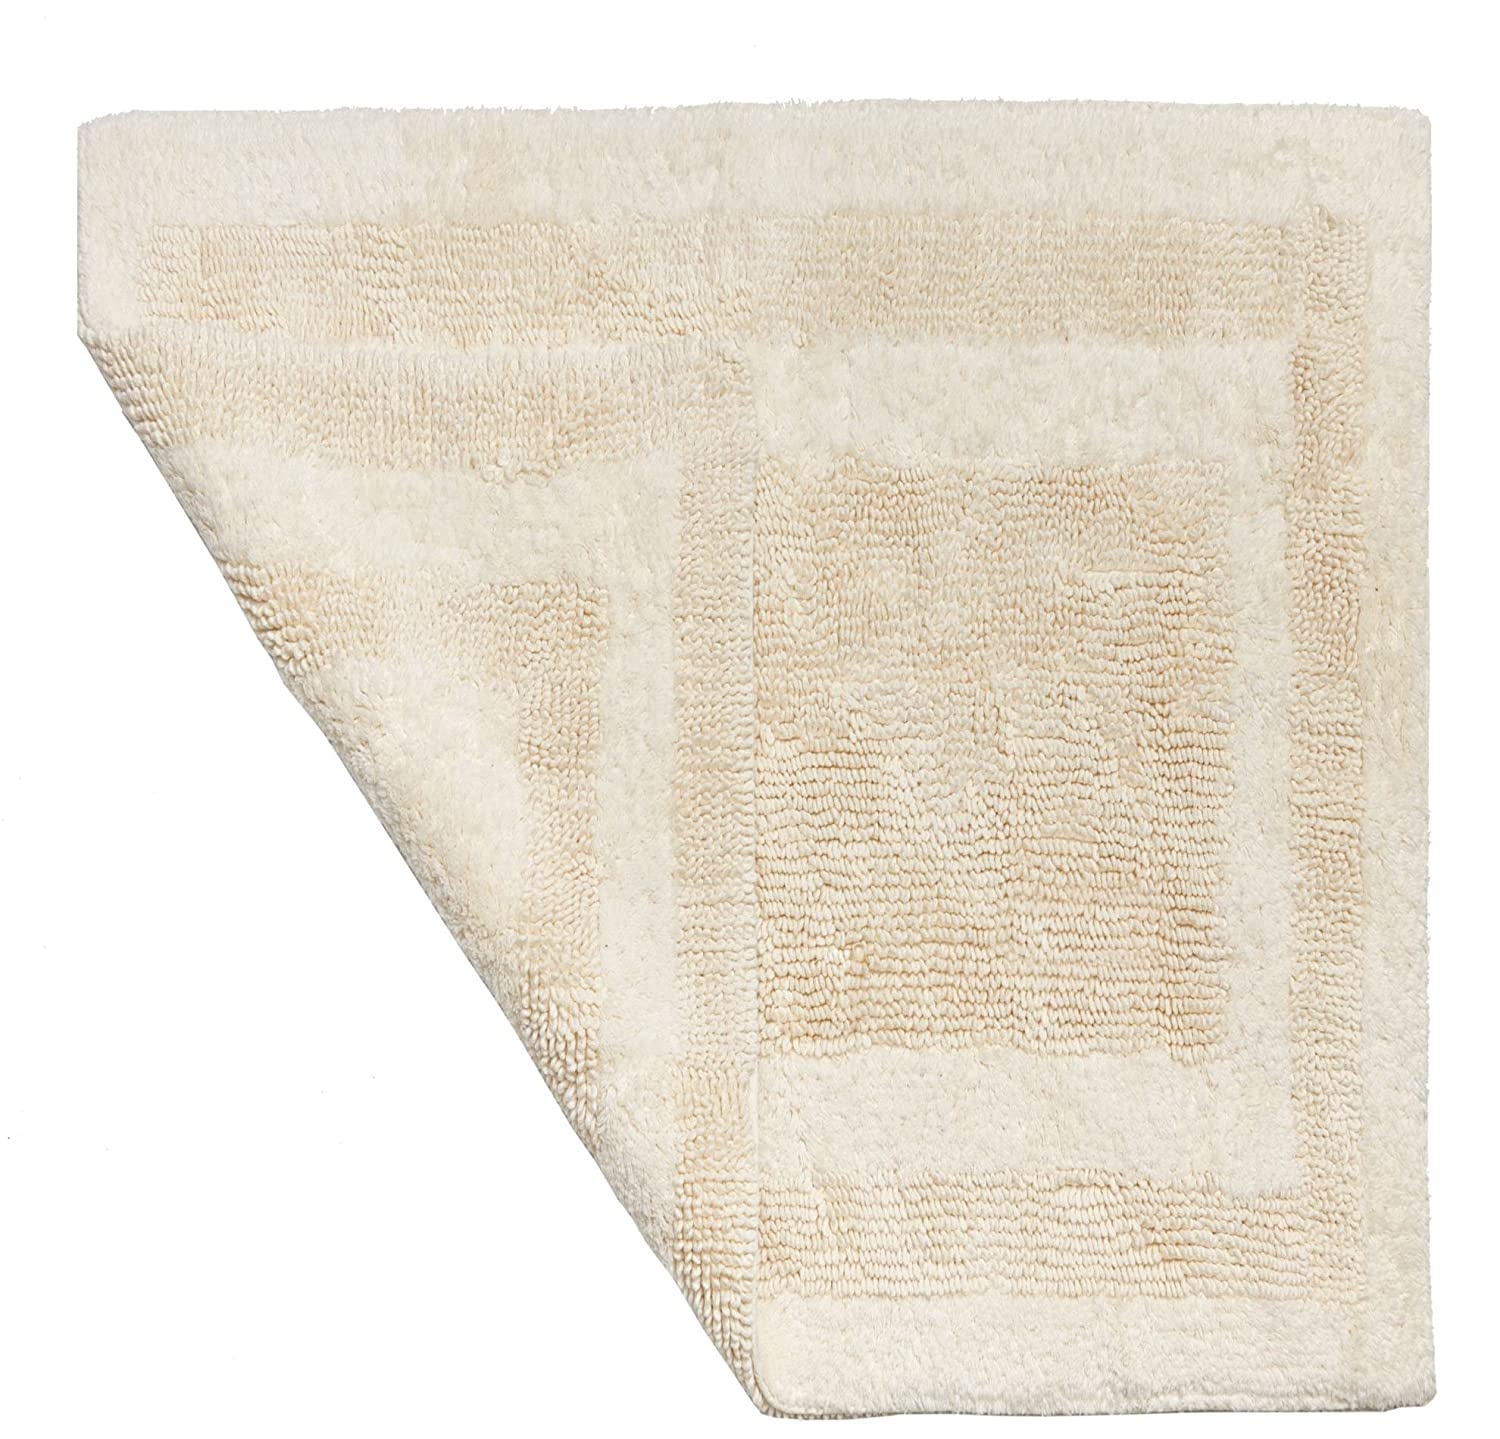 1 Piece 30 X 48 Vanilla White Hydro Soft Bath Rug, Ice Large Solid Color Plush Super Soft Comfort Mat Reversible Fast Drying Absorbent Step Out Shower Sink Jack And Jill Bathroom Bathmat Luxury Cotton